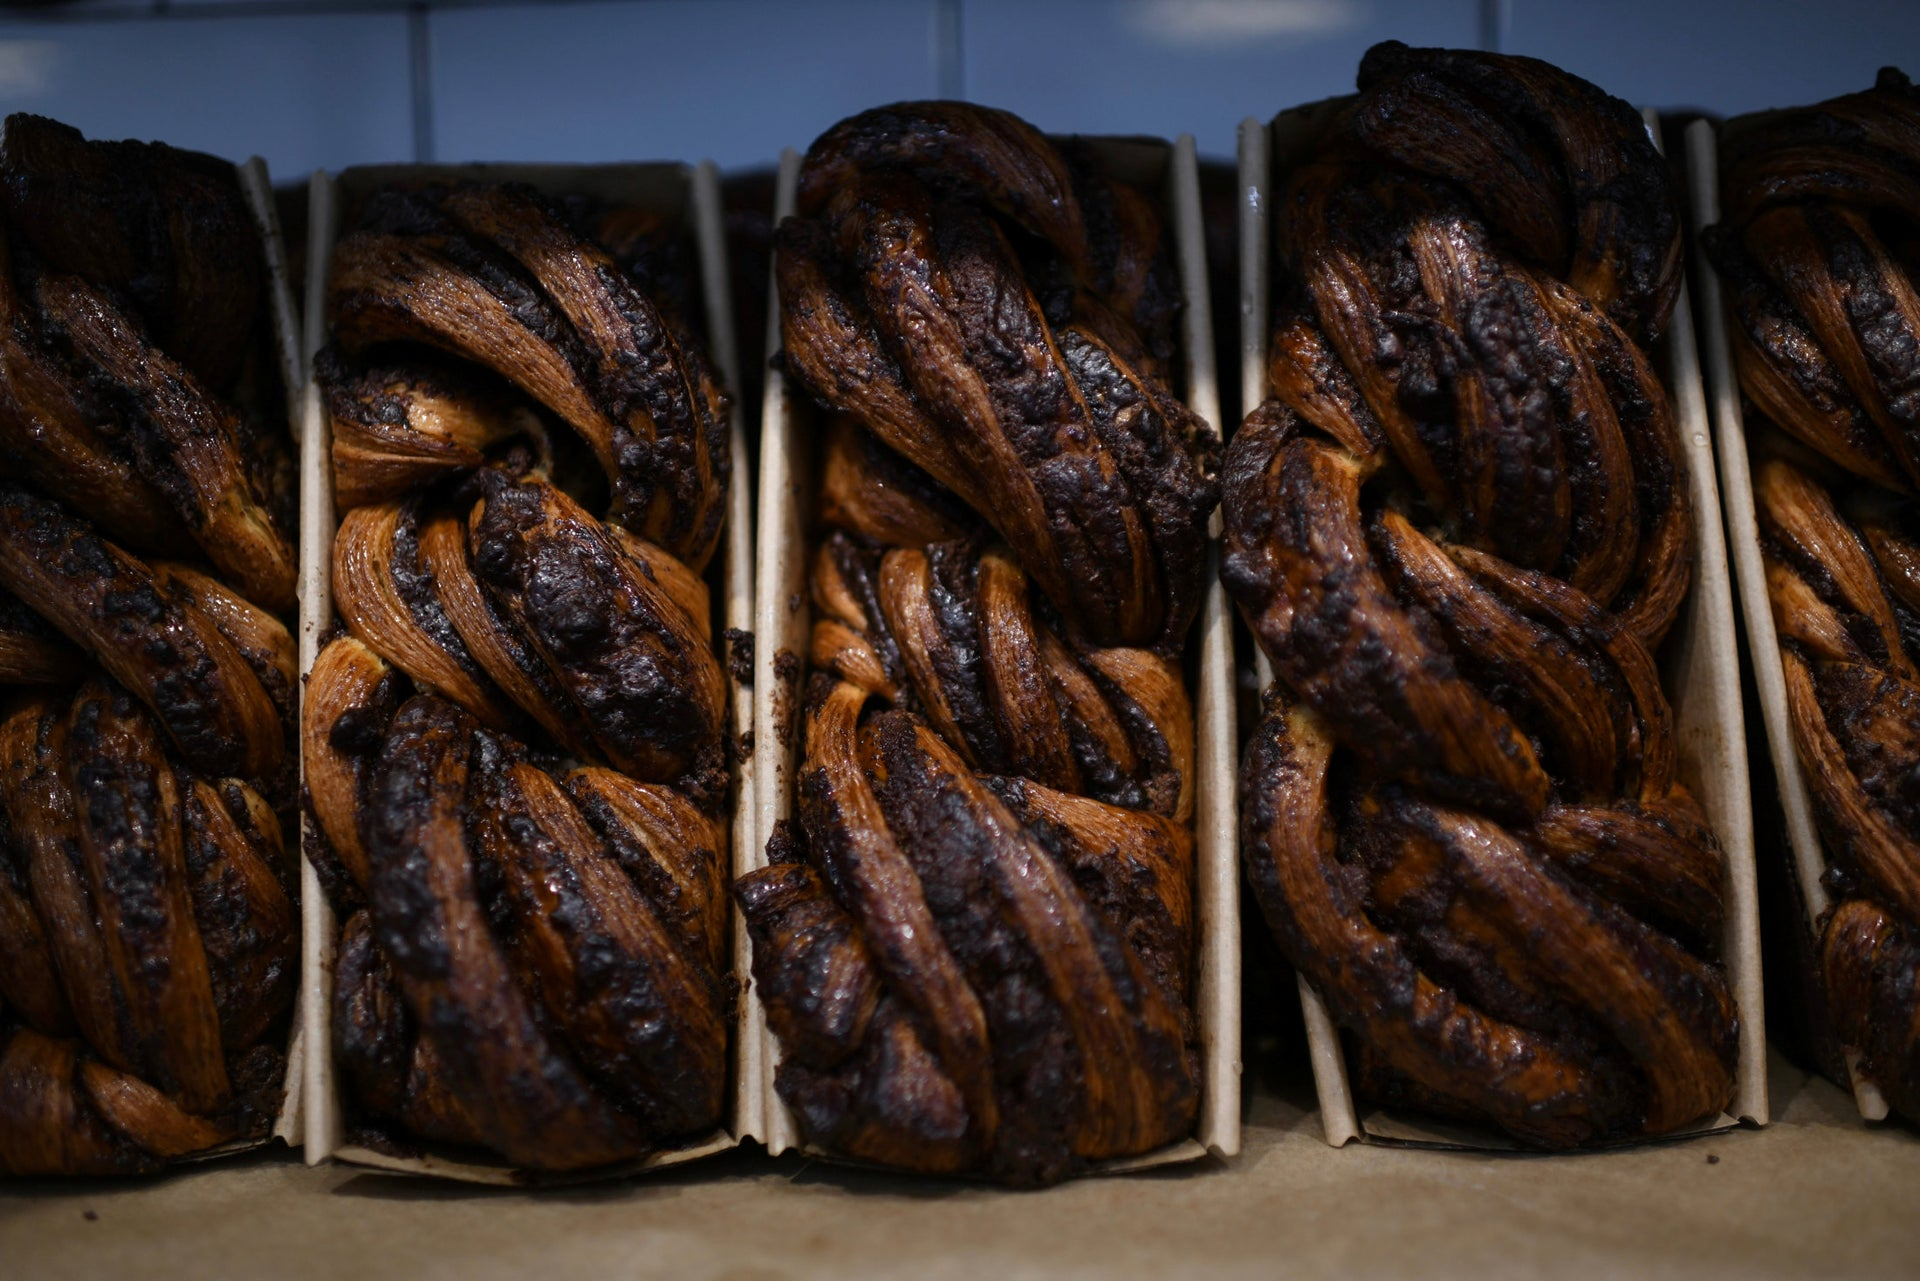 Babkas lined up at Michaeli bakery, June 7, 2019